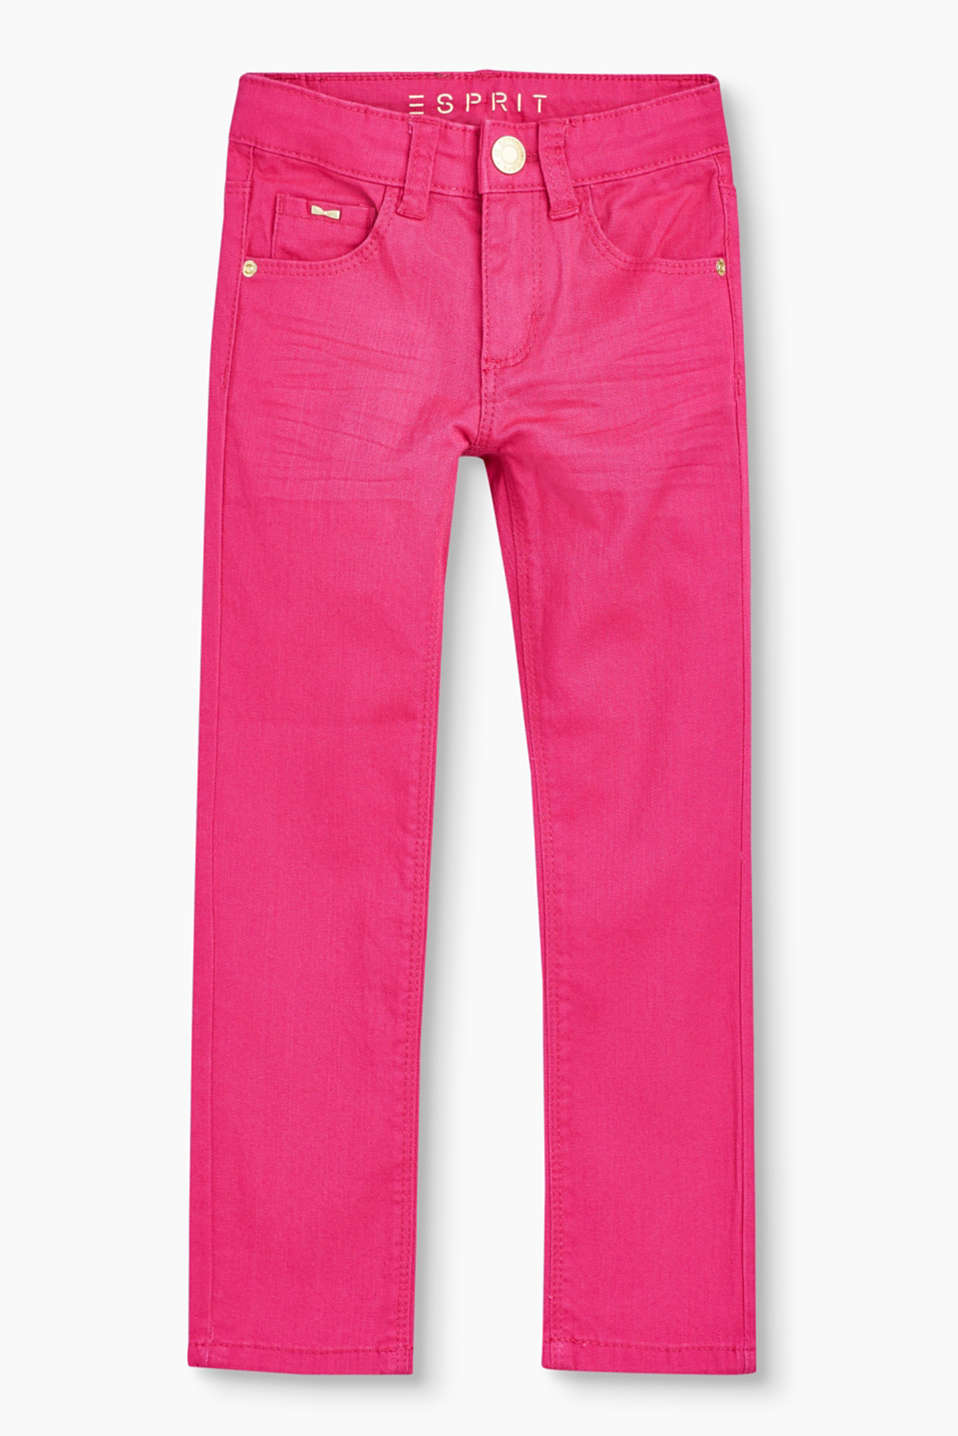 Esprit - Coloured stretch jeans, adjustable waist